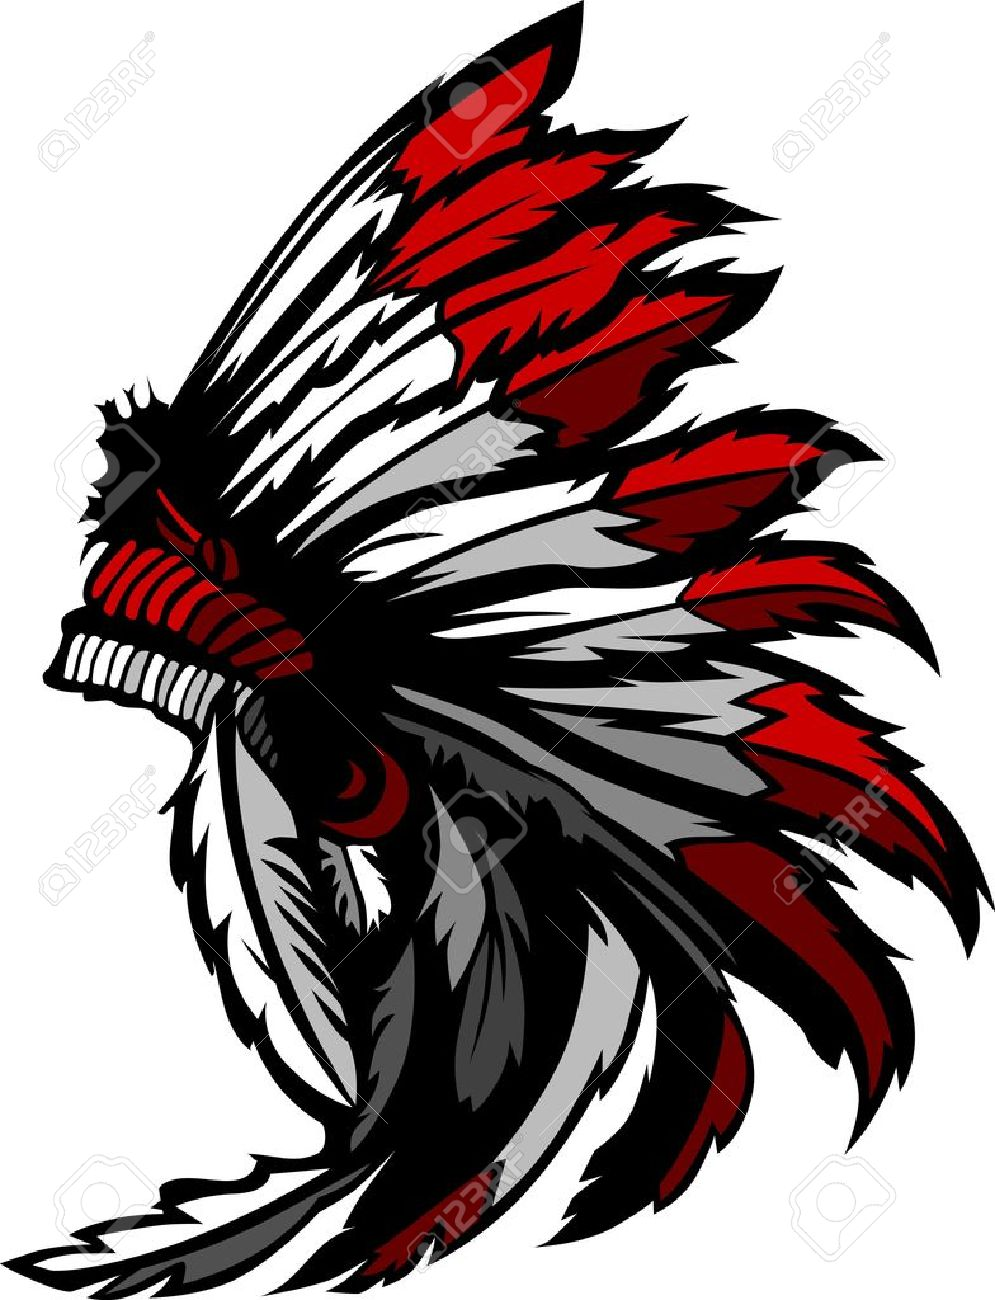 Graphic Native American Indian Chief Headdress Royalty Free Cliparts Vectors And Stock Illustration Image 12497993